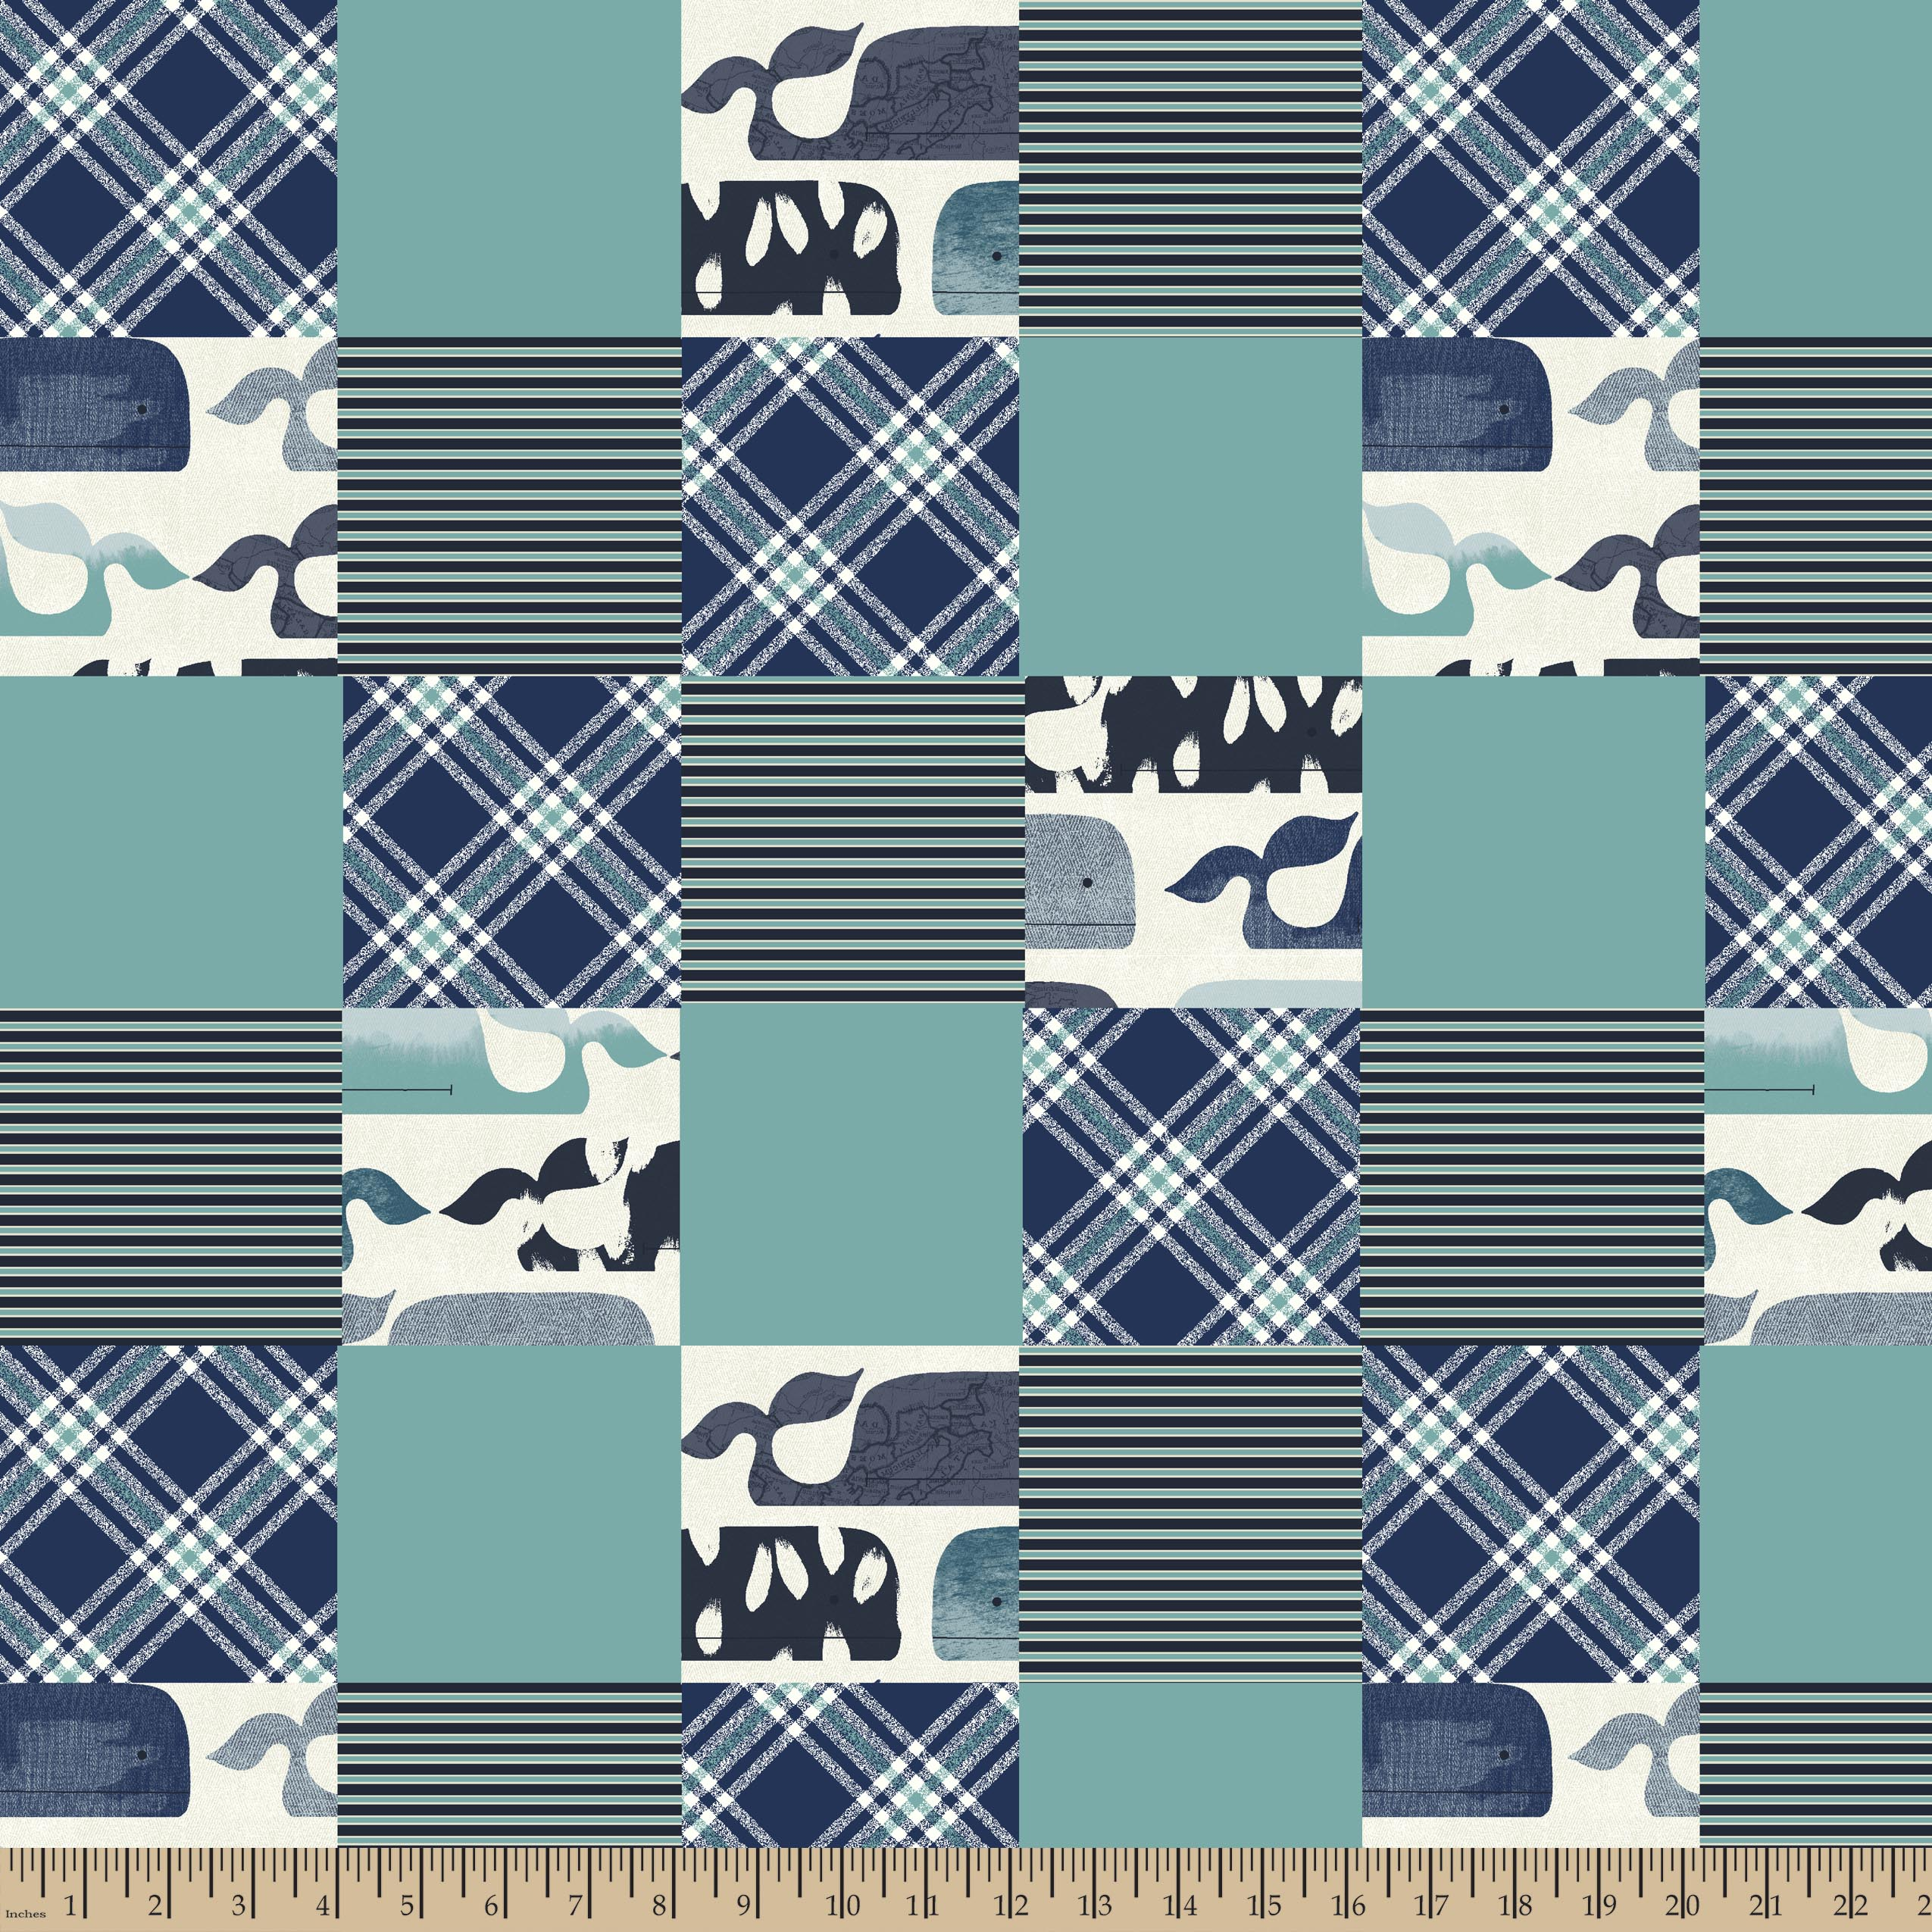 Baby Whale Patches 4x4 Multi Substrate Fabric by the Yard